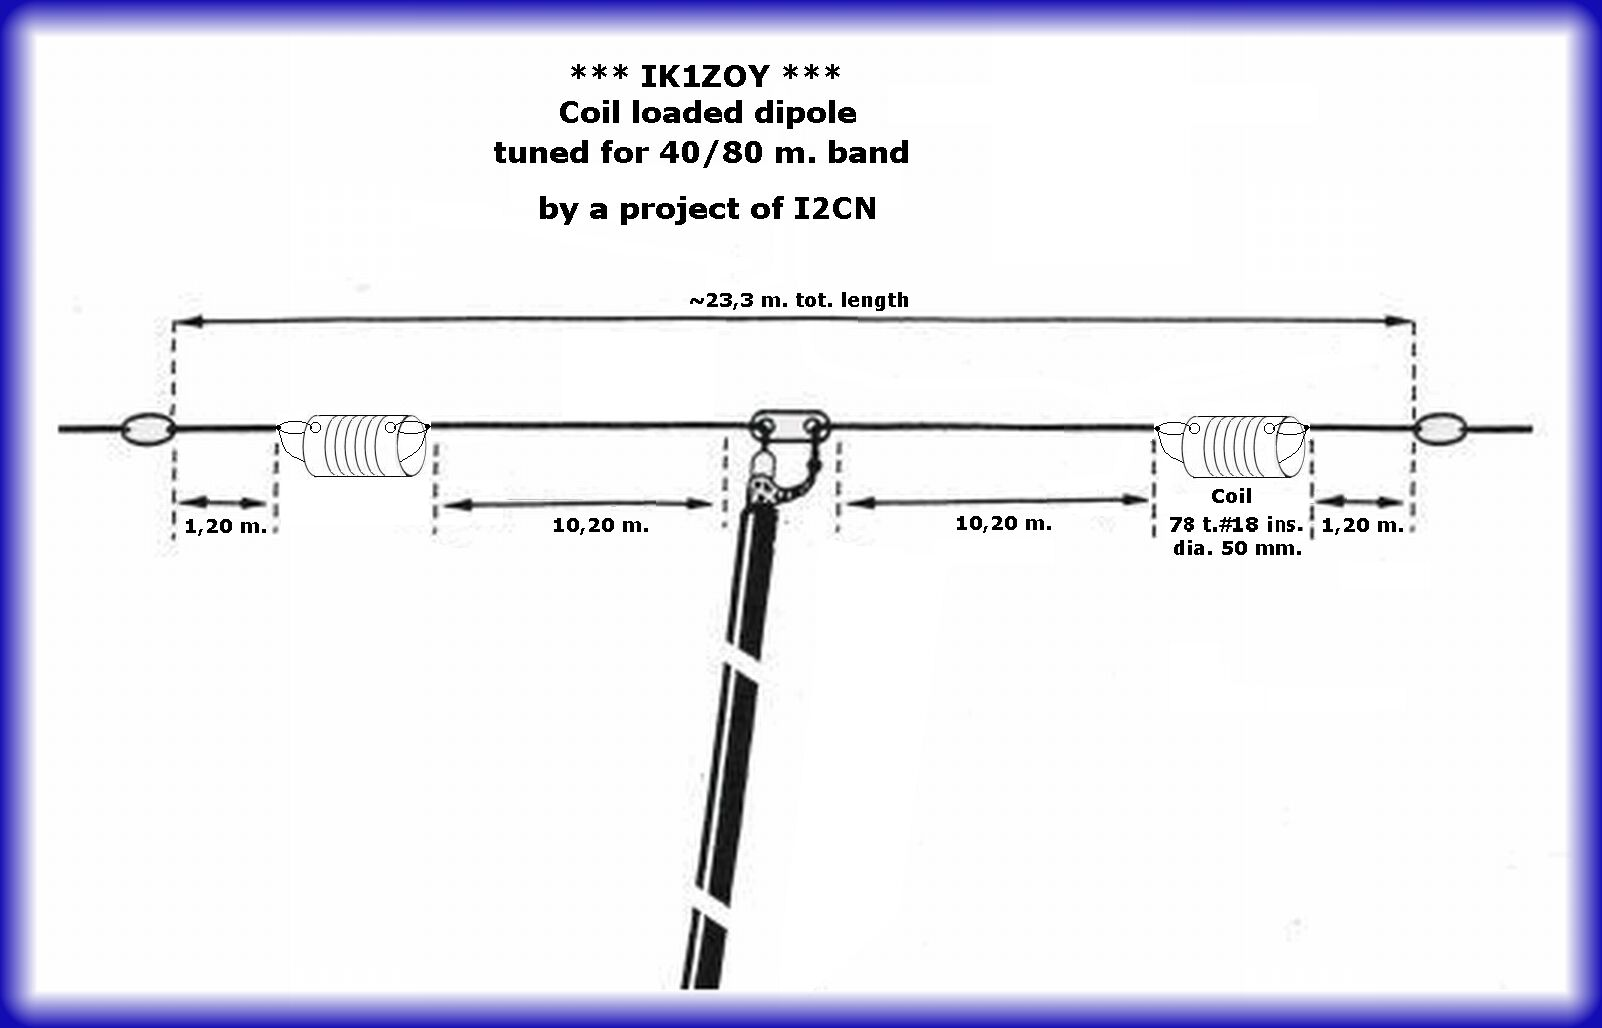 hight resolution of 40 80mt coil loaded dipole 23 3mt length ik1zoy